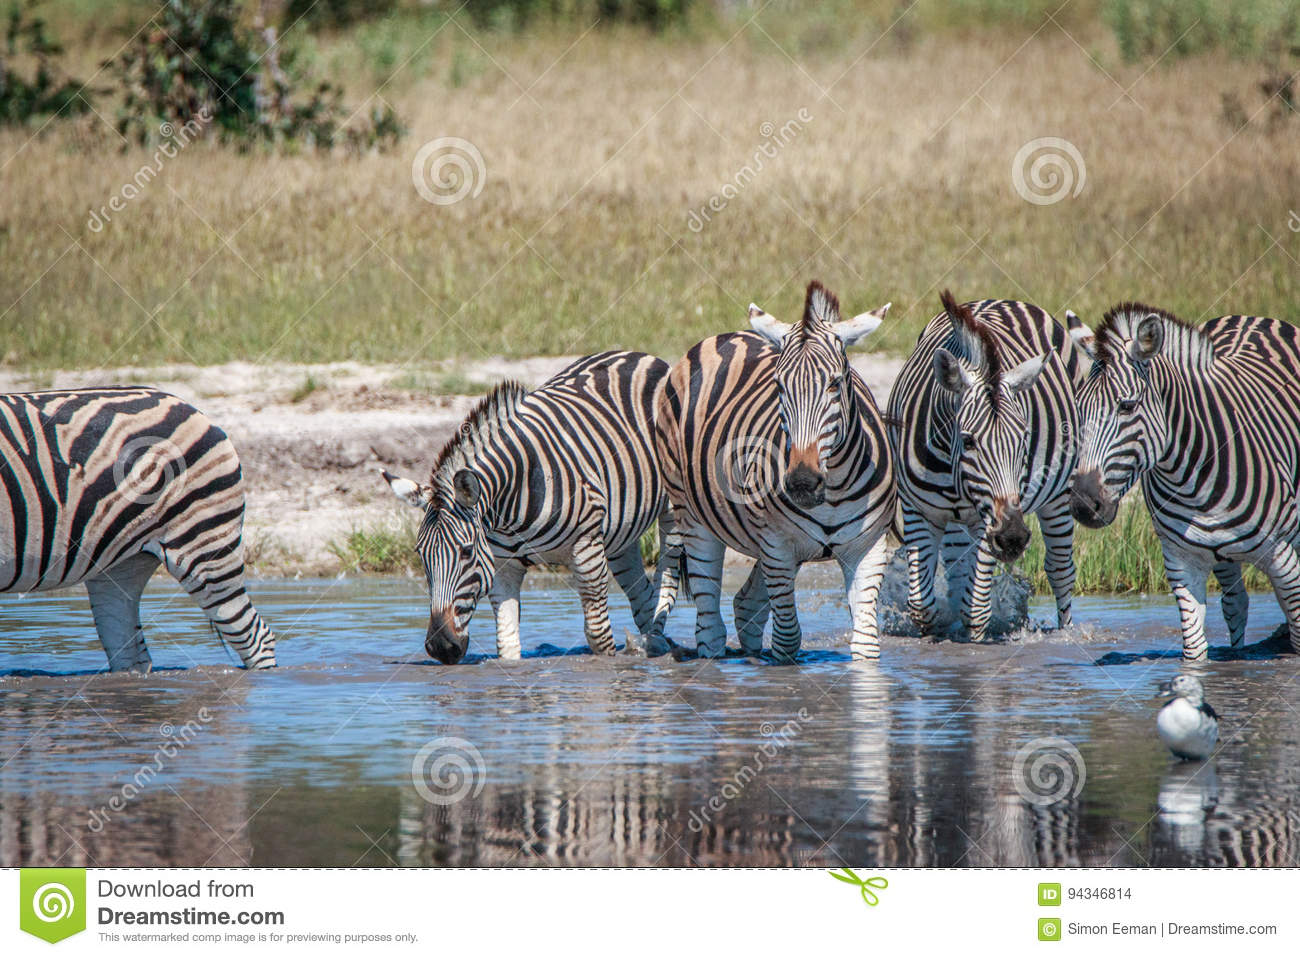 Several Zebras drinking in the Chobe.